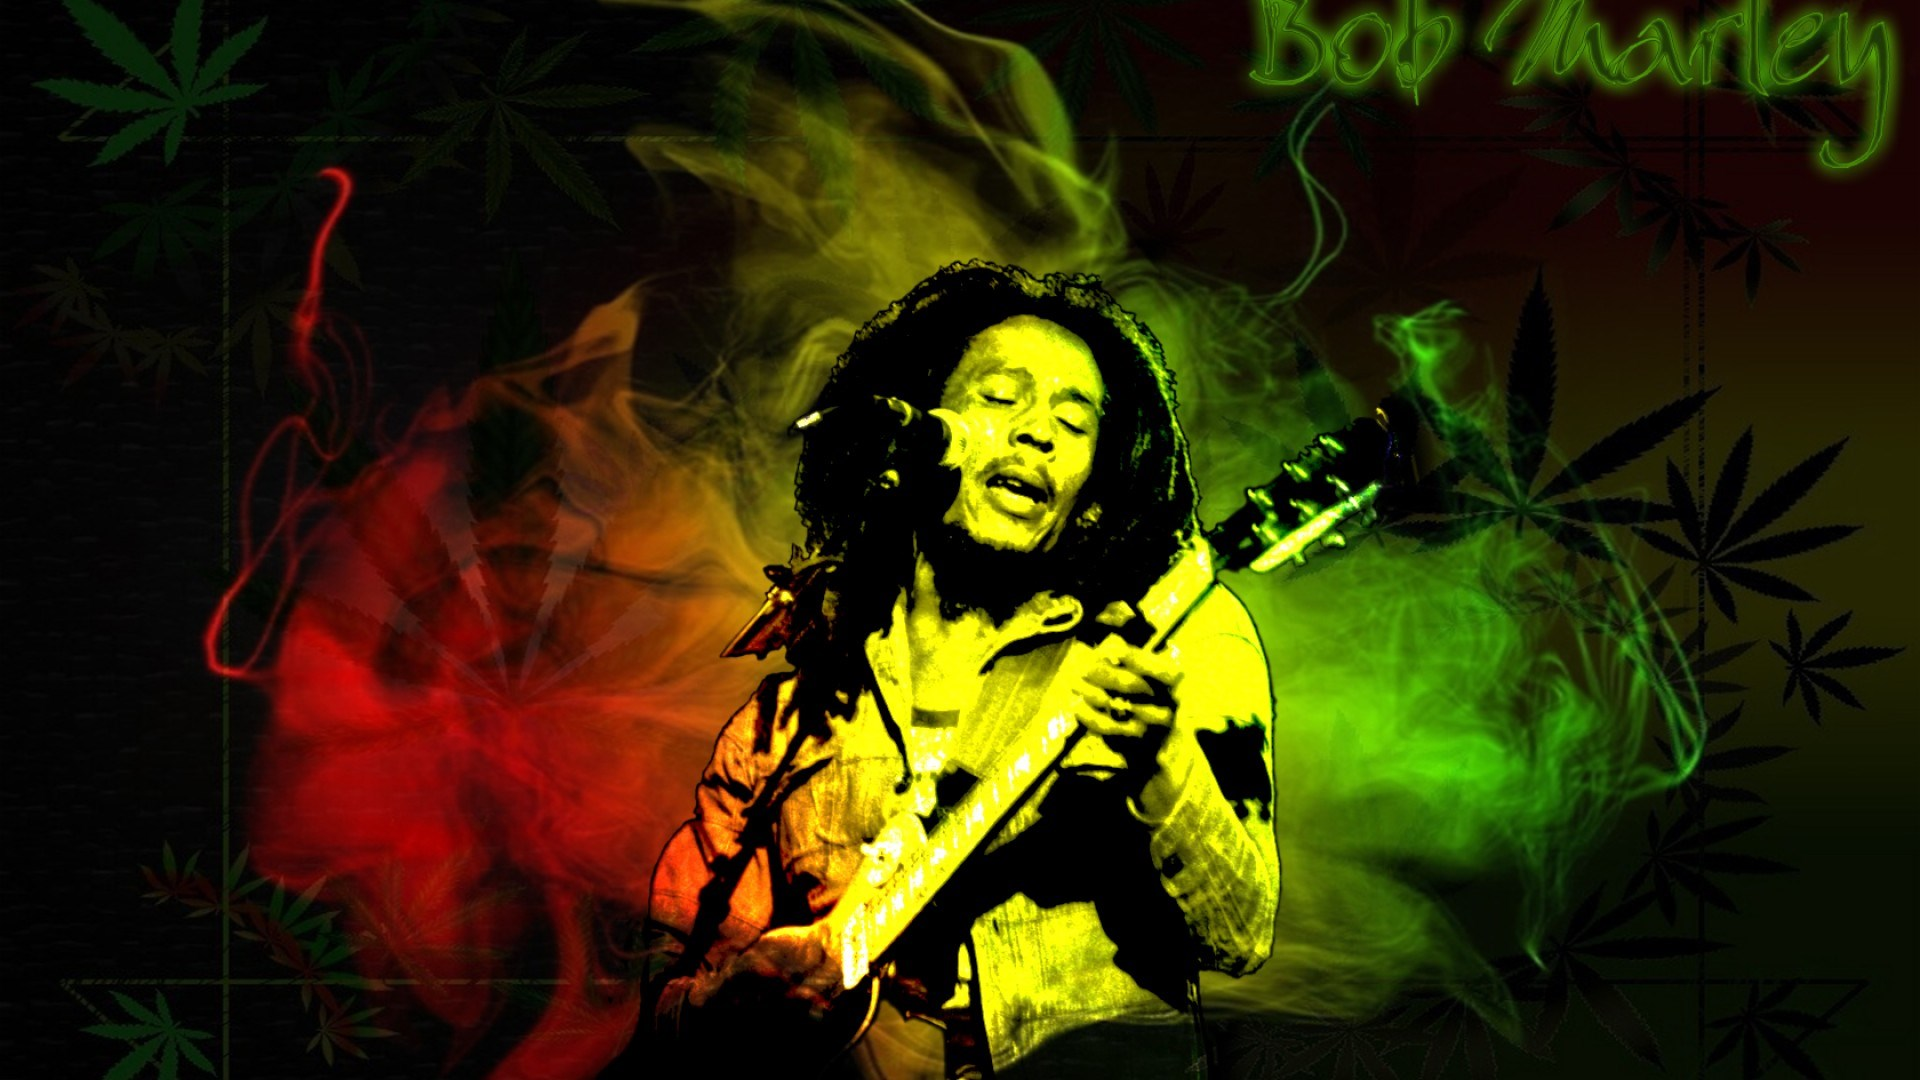 bob-marley-free-images-pictures-wallpaper-wpc9003119